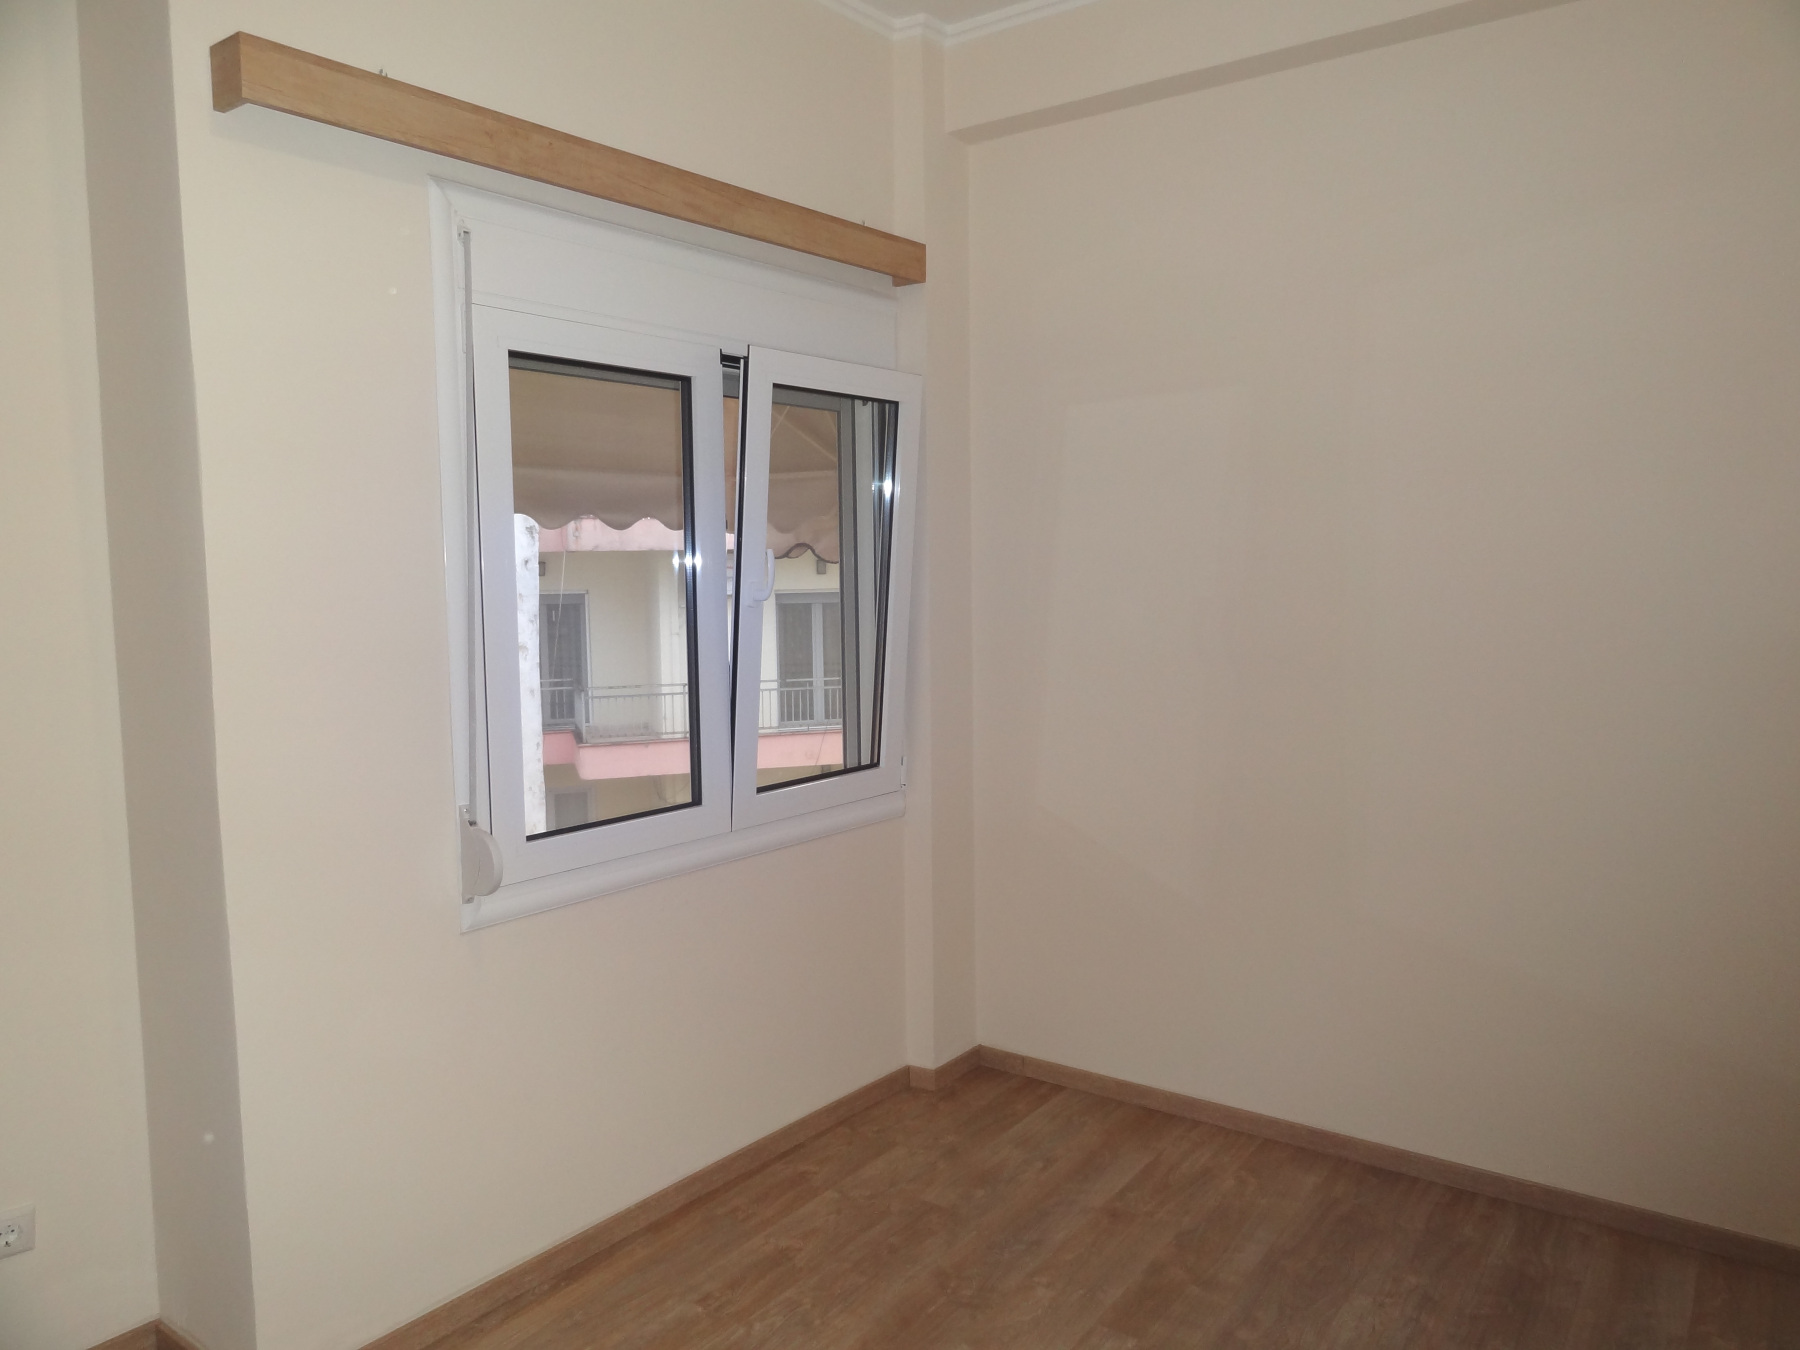 Two-rooms studio for rent, completely renovated in 2021, 34 sq.m. 3rd floor in Pargis square in Ioannina